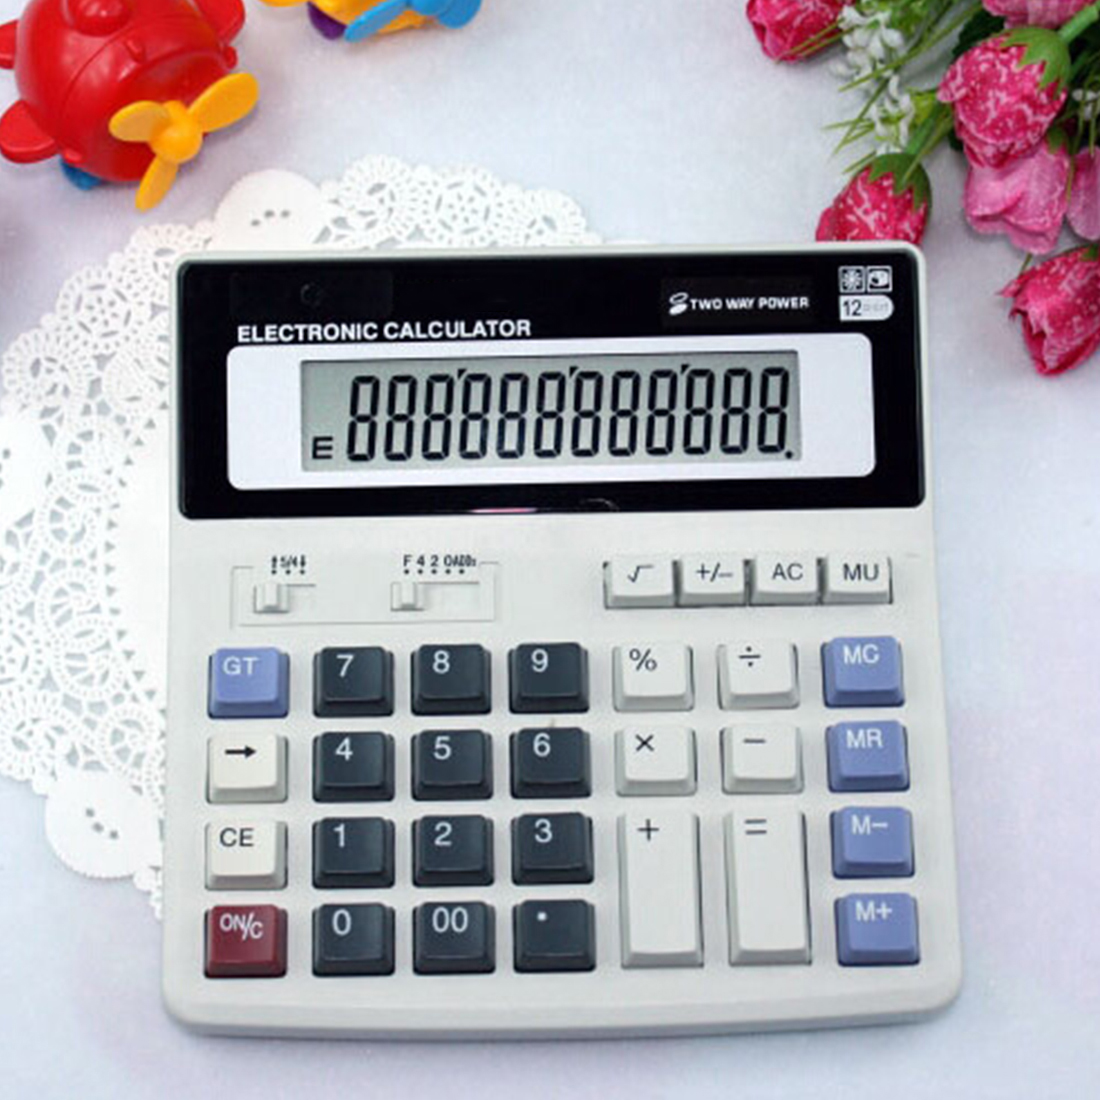 Etmakit New Arrival Big Buttons Office Calculator Large Computer Keys Muti-function Computer Battery Calculator etmakit office home calculator office worker school calculator portable pocket electronic calculating calculator newest